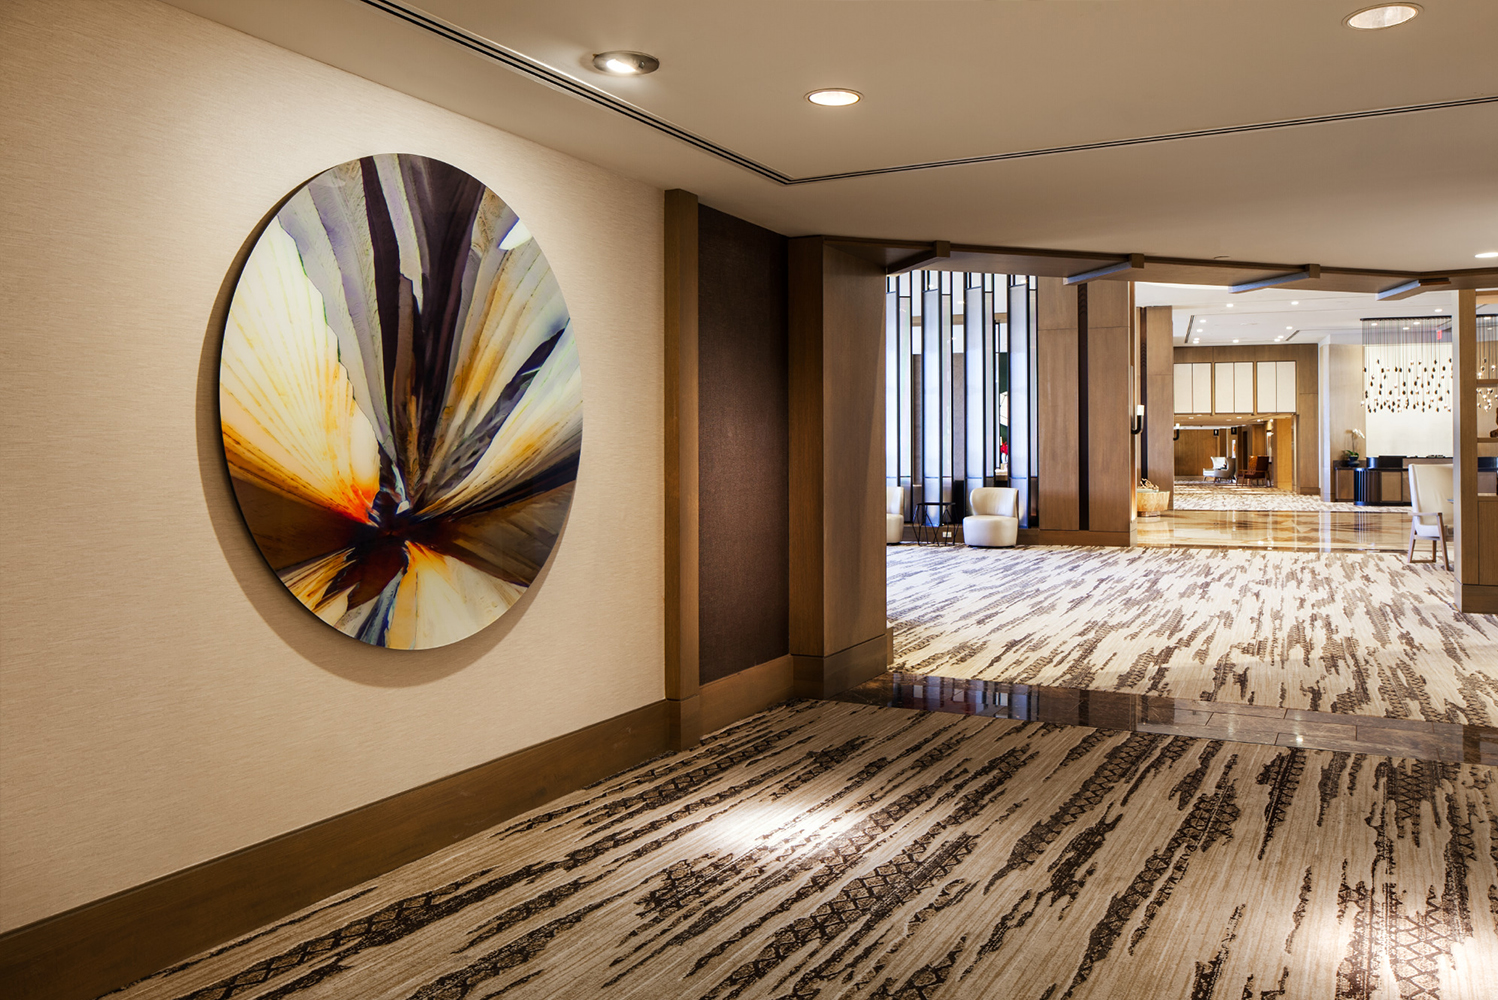 Eaton Fine Art (EFA) completed the art program for the recently-renovated Canyon Suites at The Phoenician.